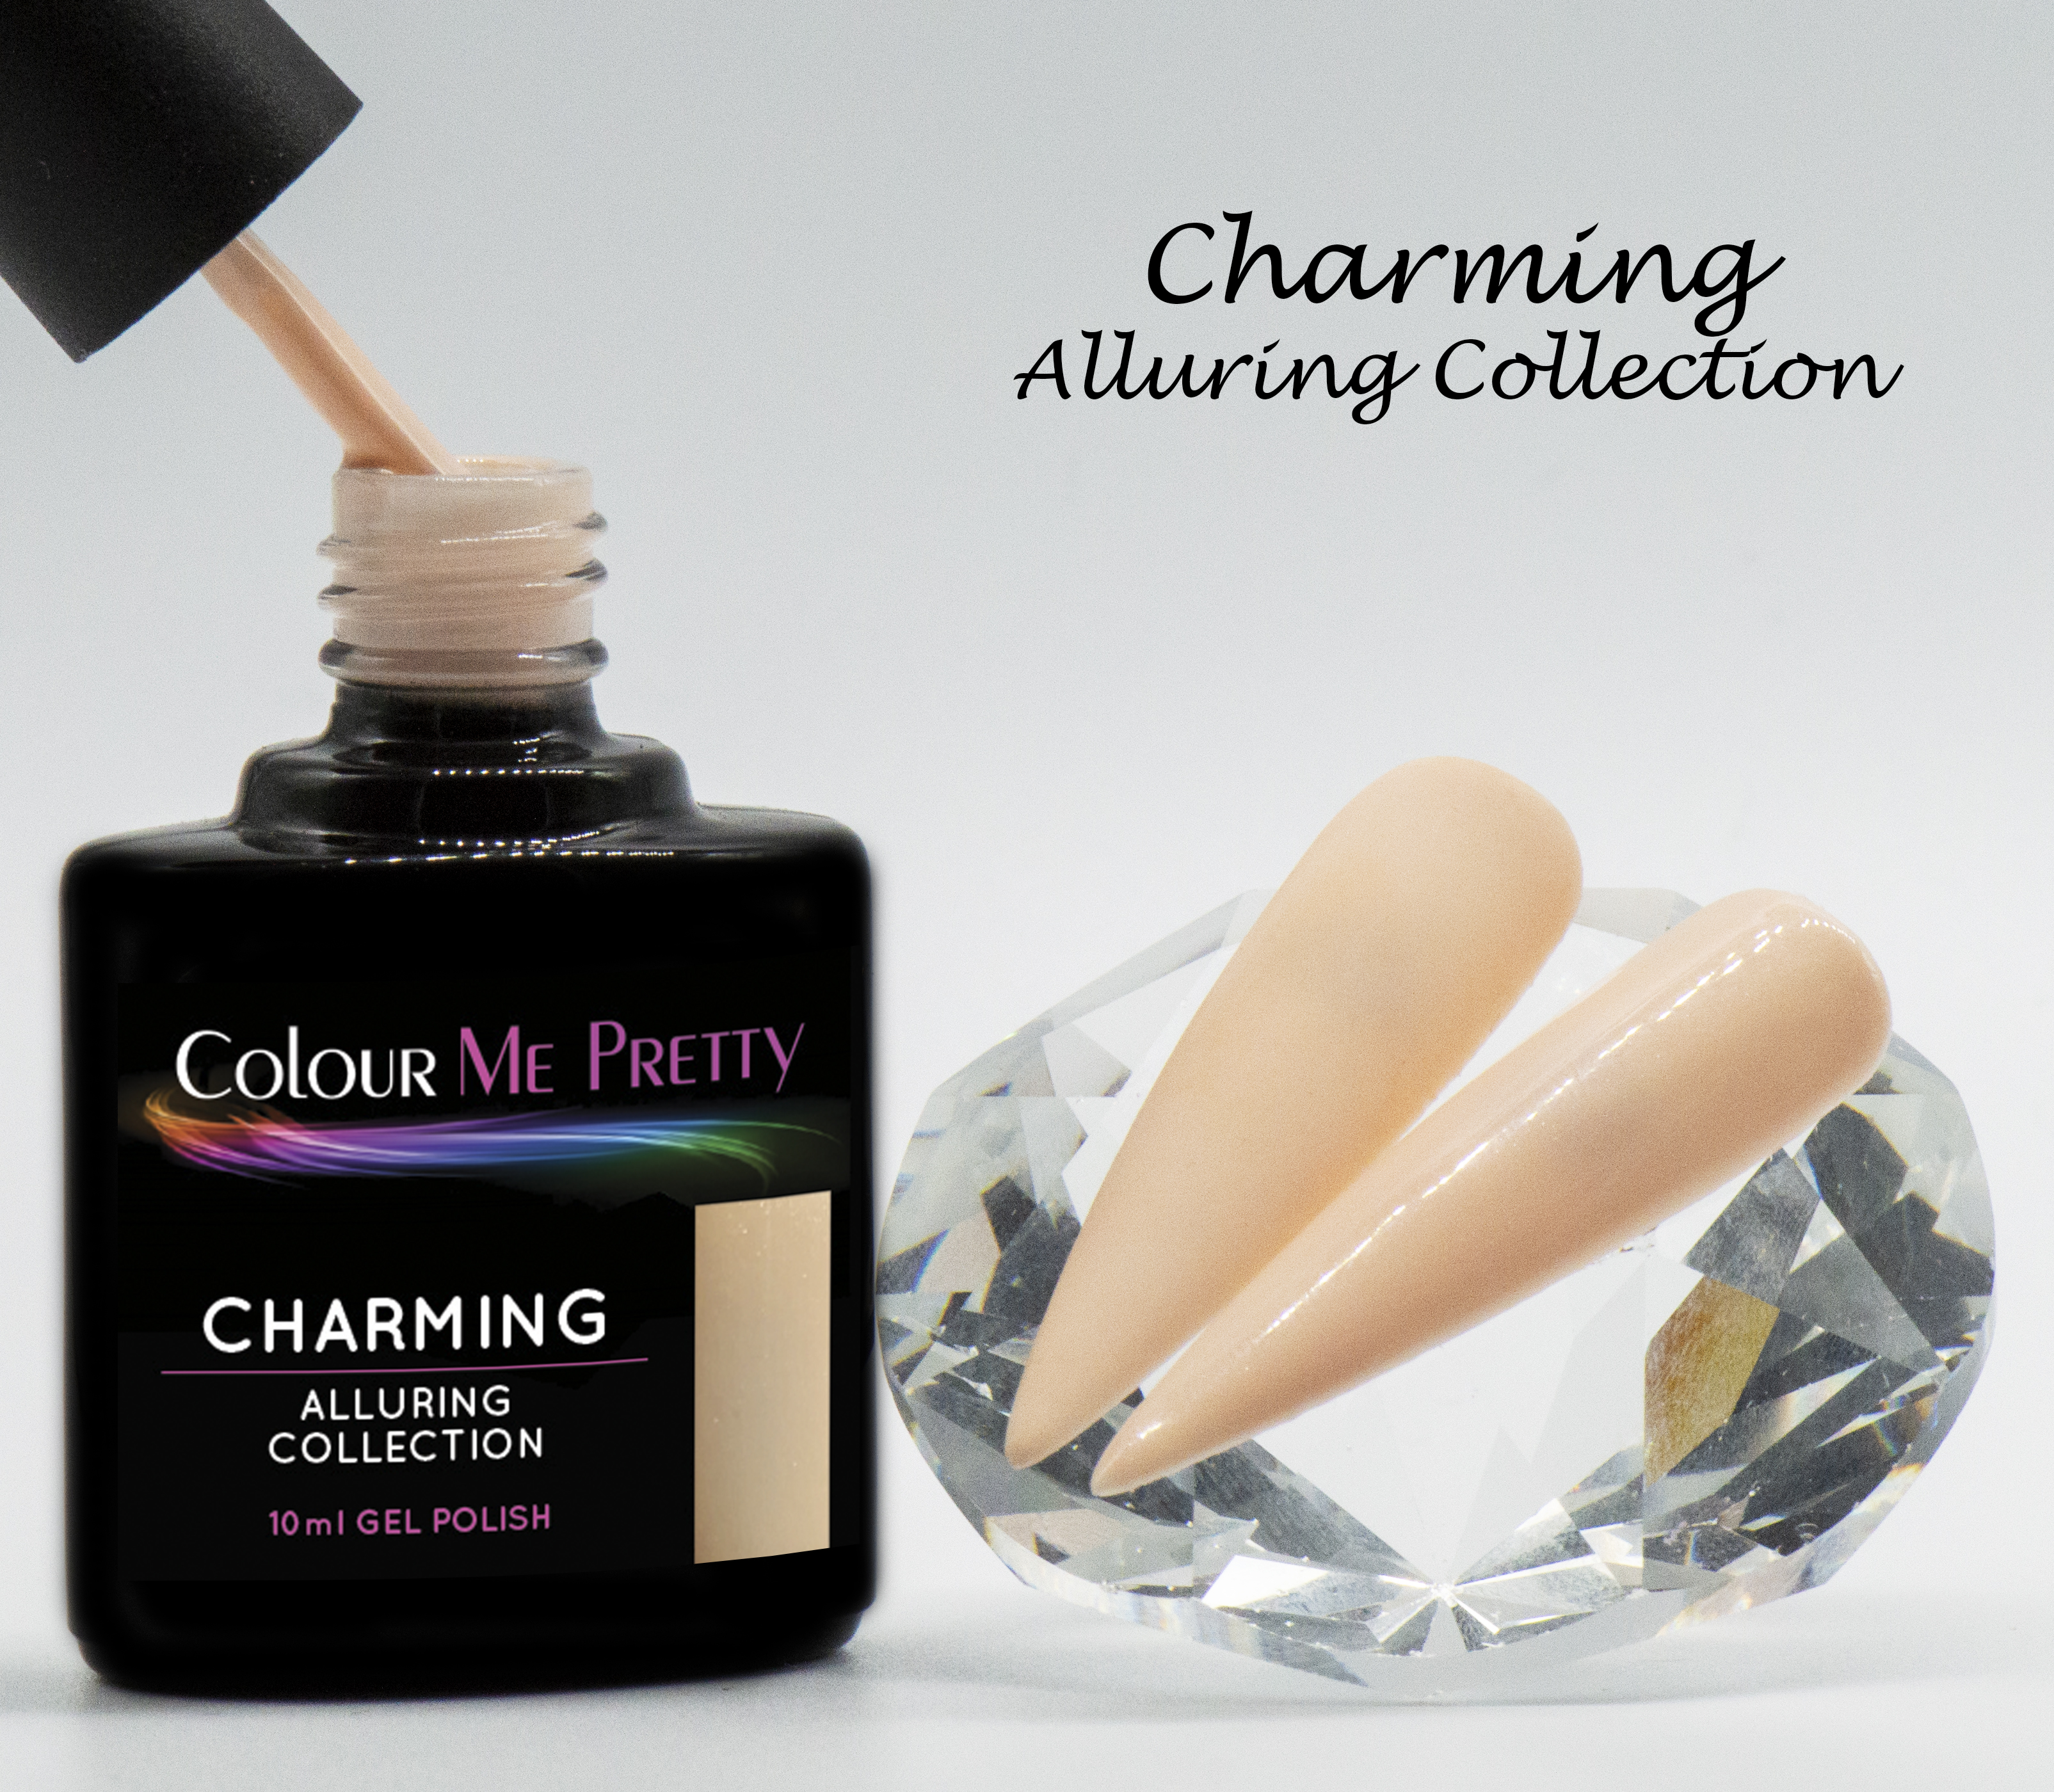 Alluring Charming